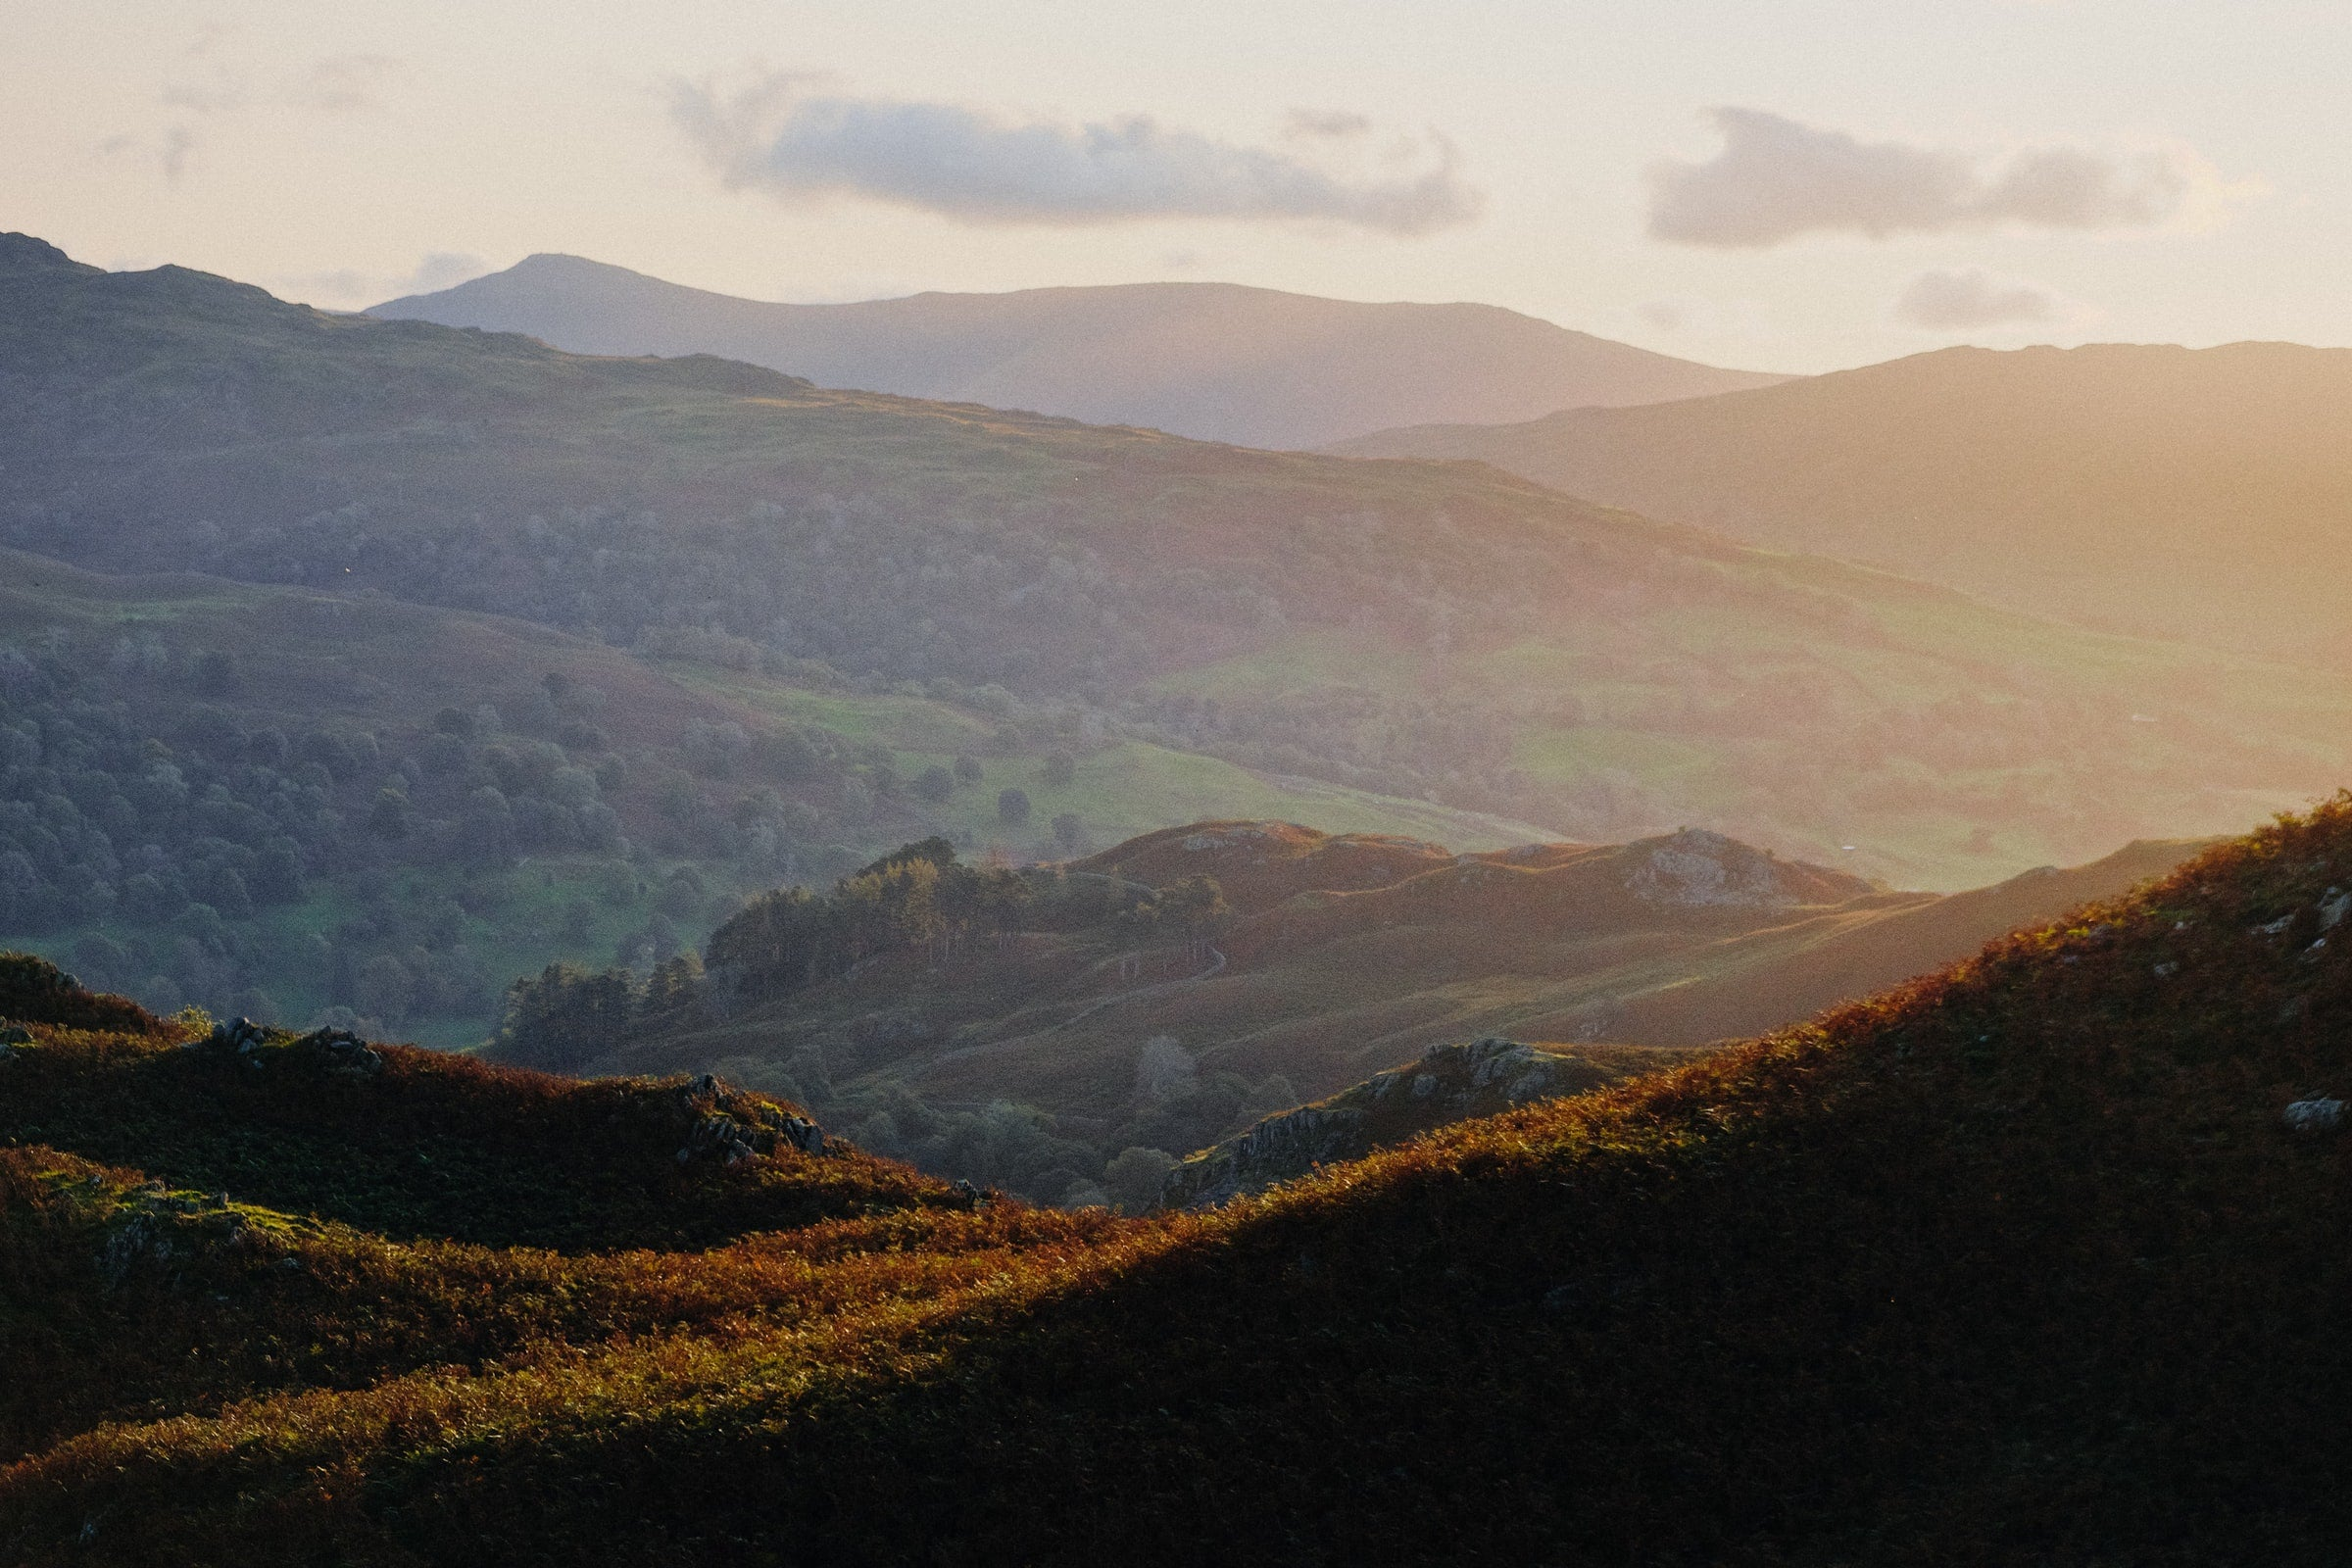 A view of green and brown rolling hills, with sunlight breaking across the landscape